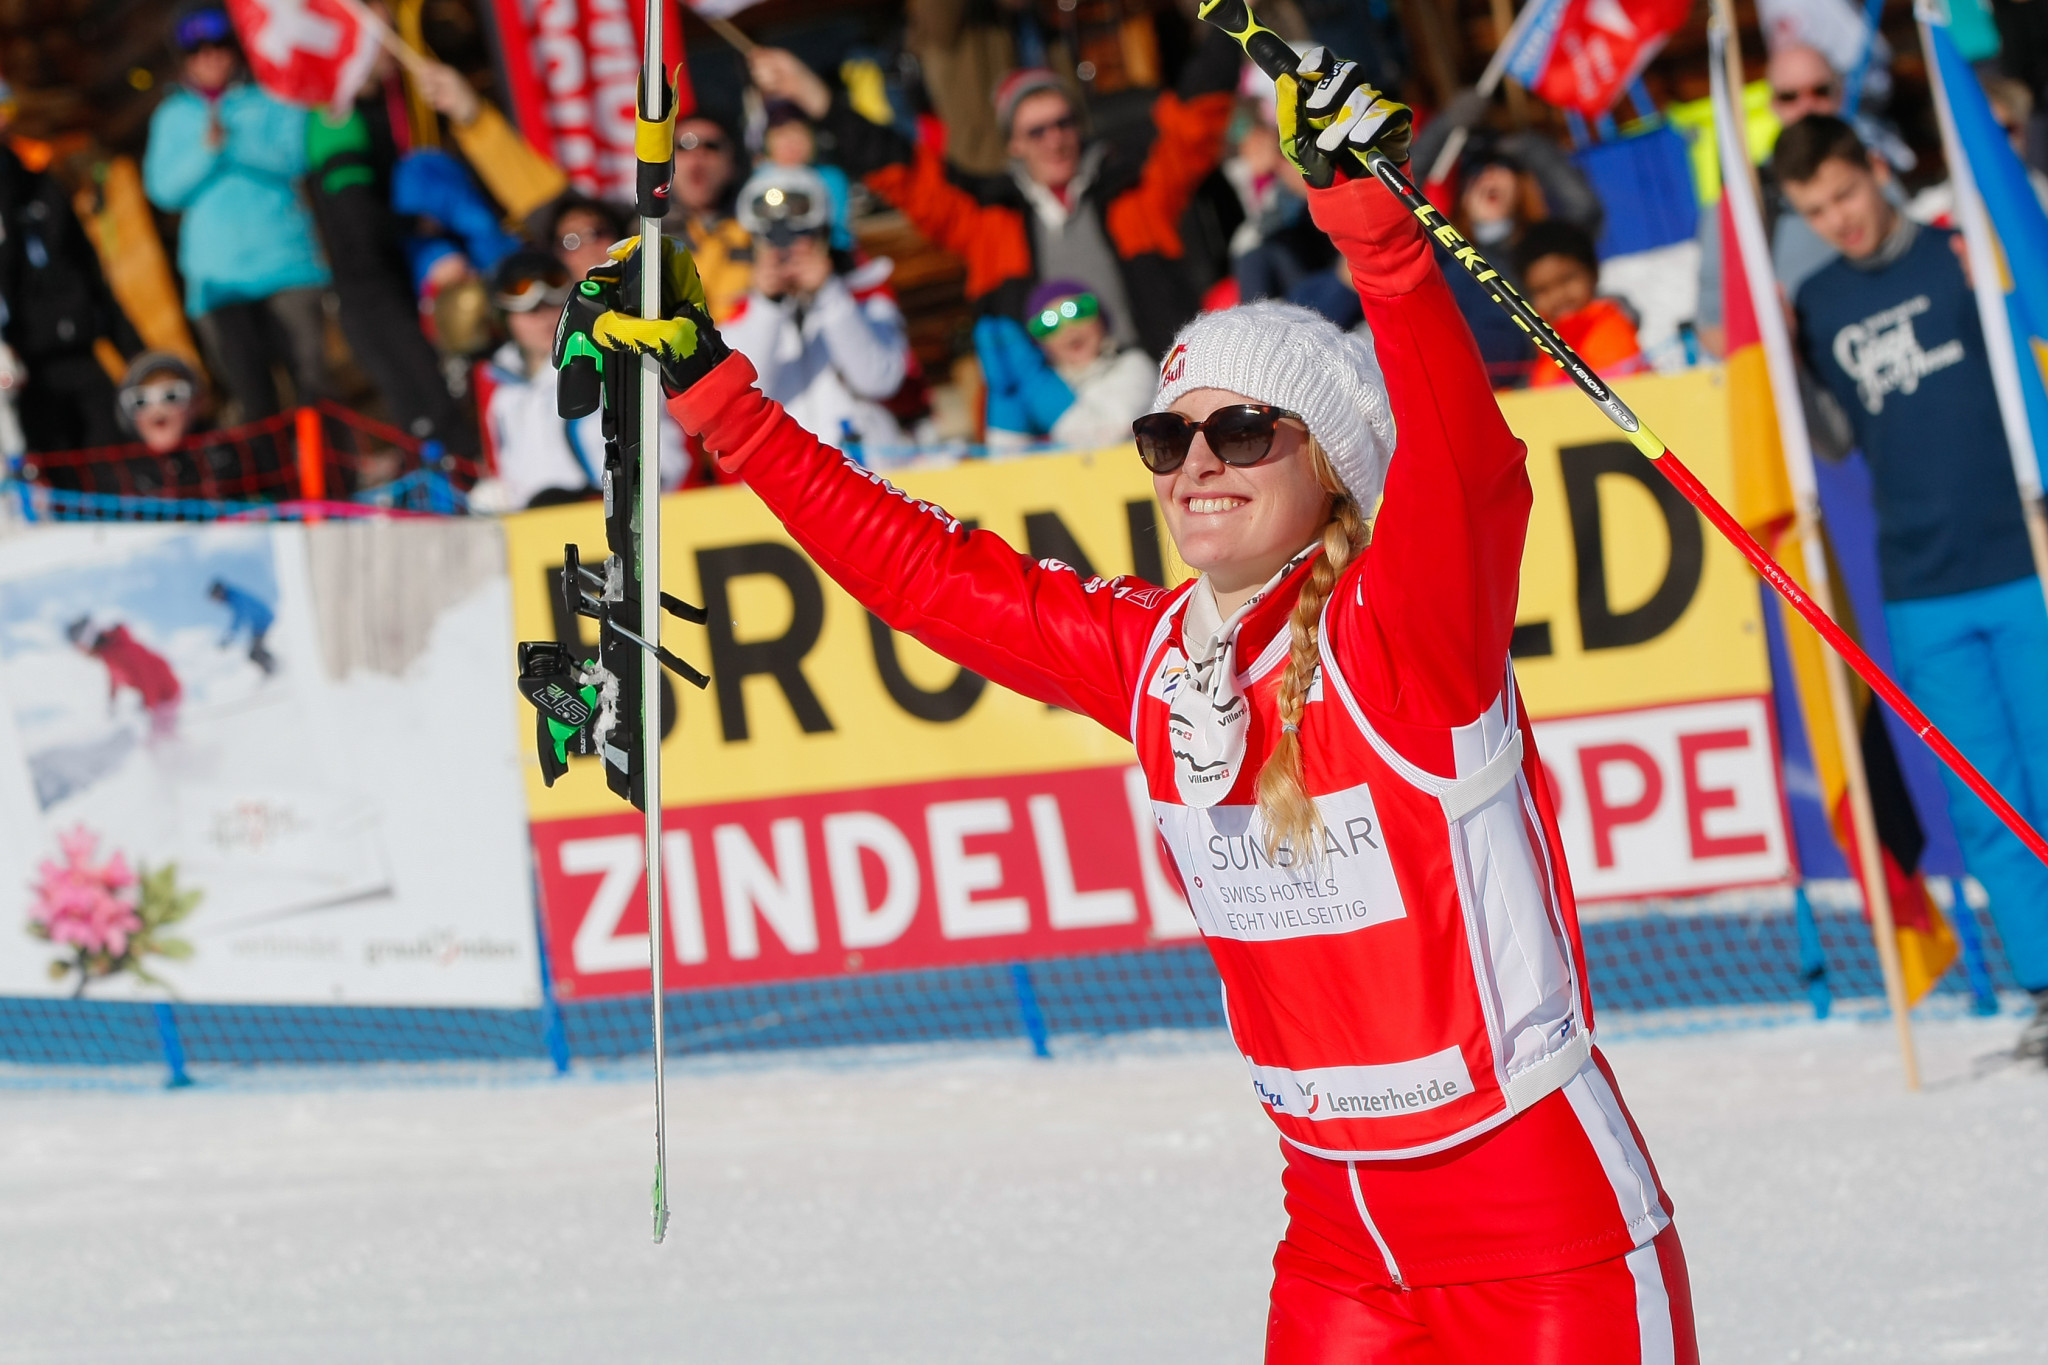 Fanny Smith has backed up her ski cross win in Arosa by qualifying fastest in Innichen ©Getty Images